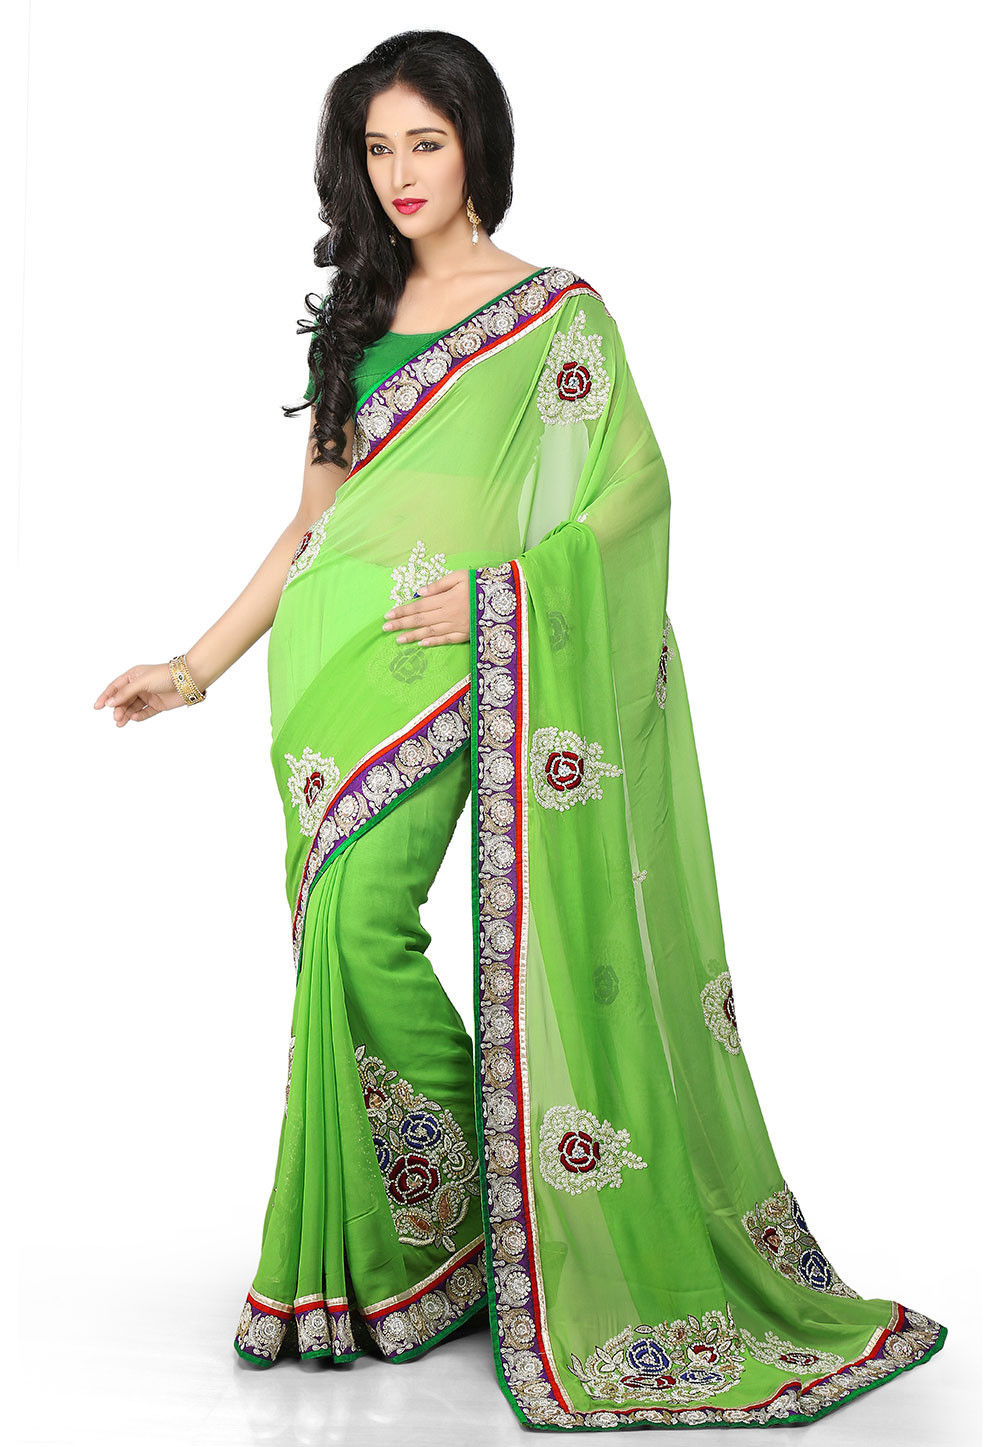 Embroidered Georgette Saree in Green Ombre